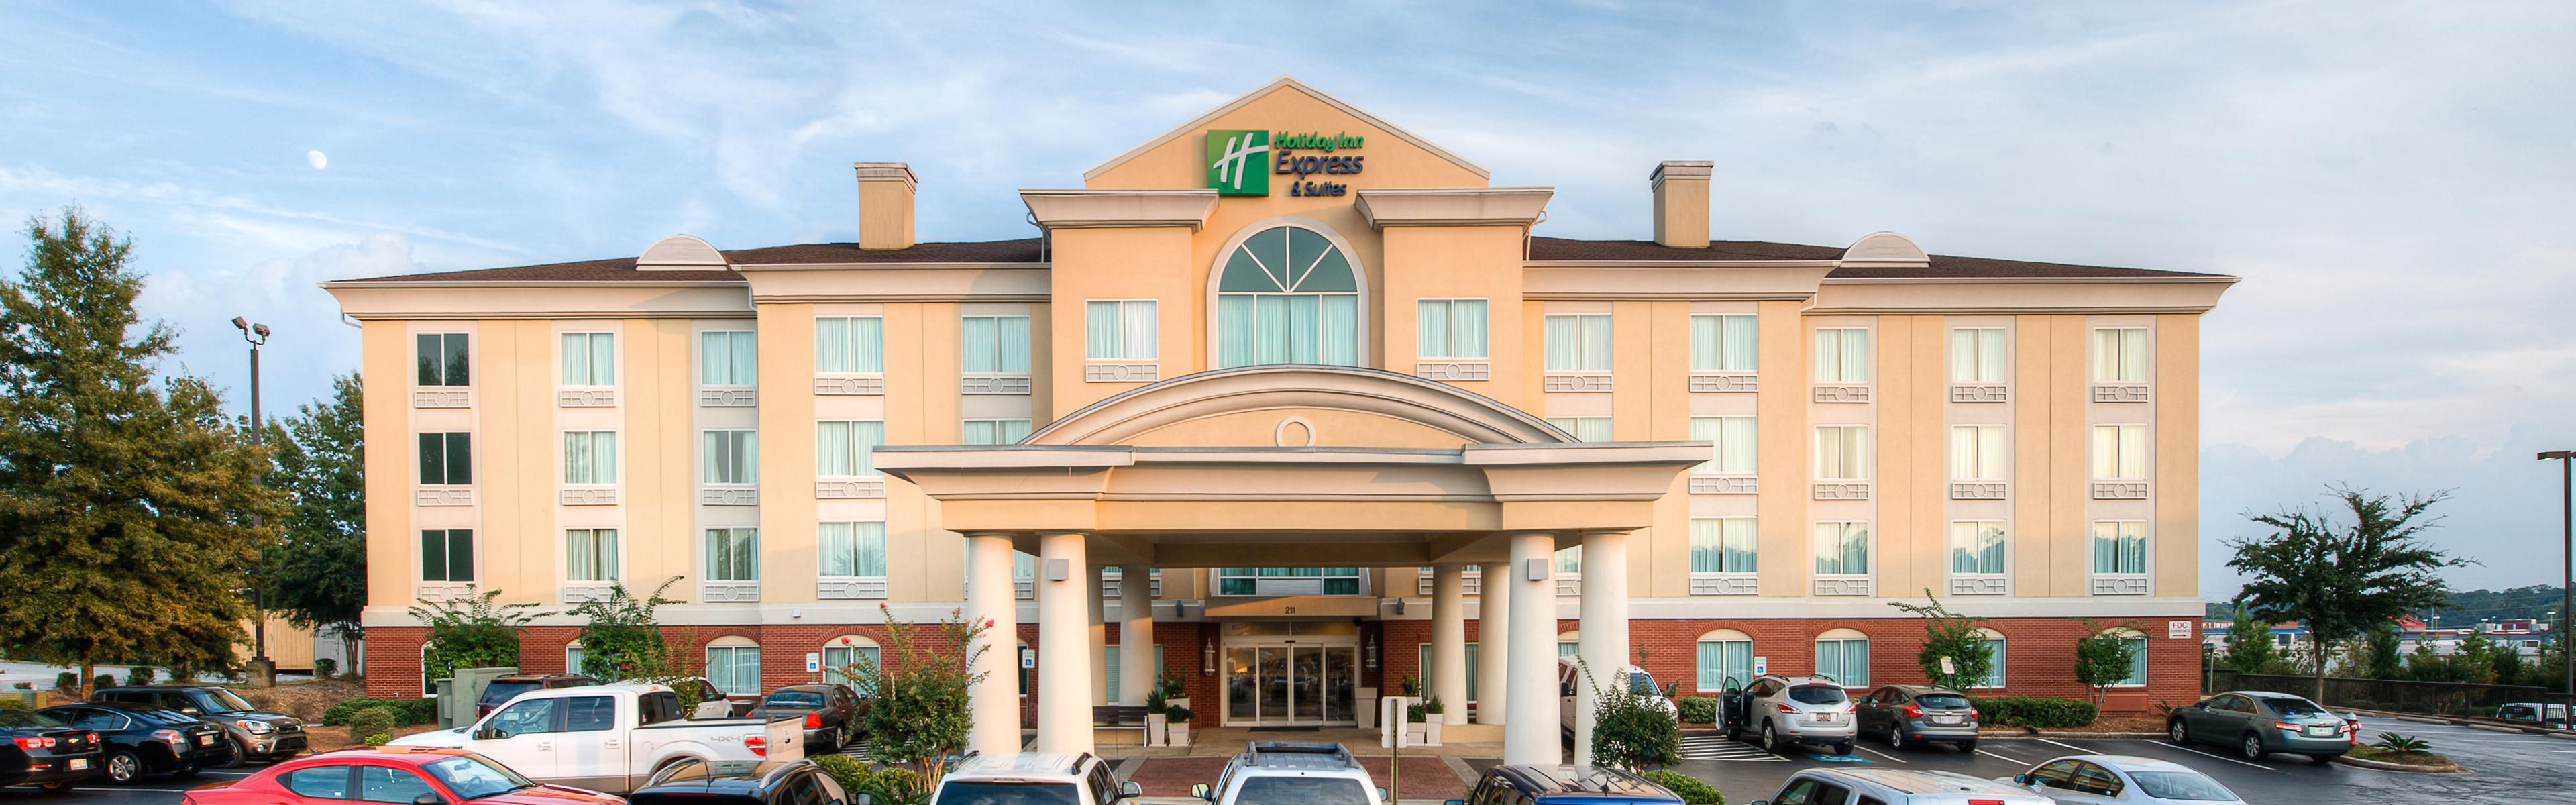 Holiday Inn Express Suites Columbia I 26 Harbison Blvd Columbia South Carolina Sc